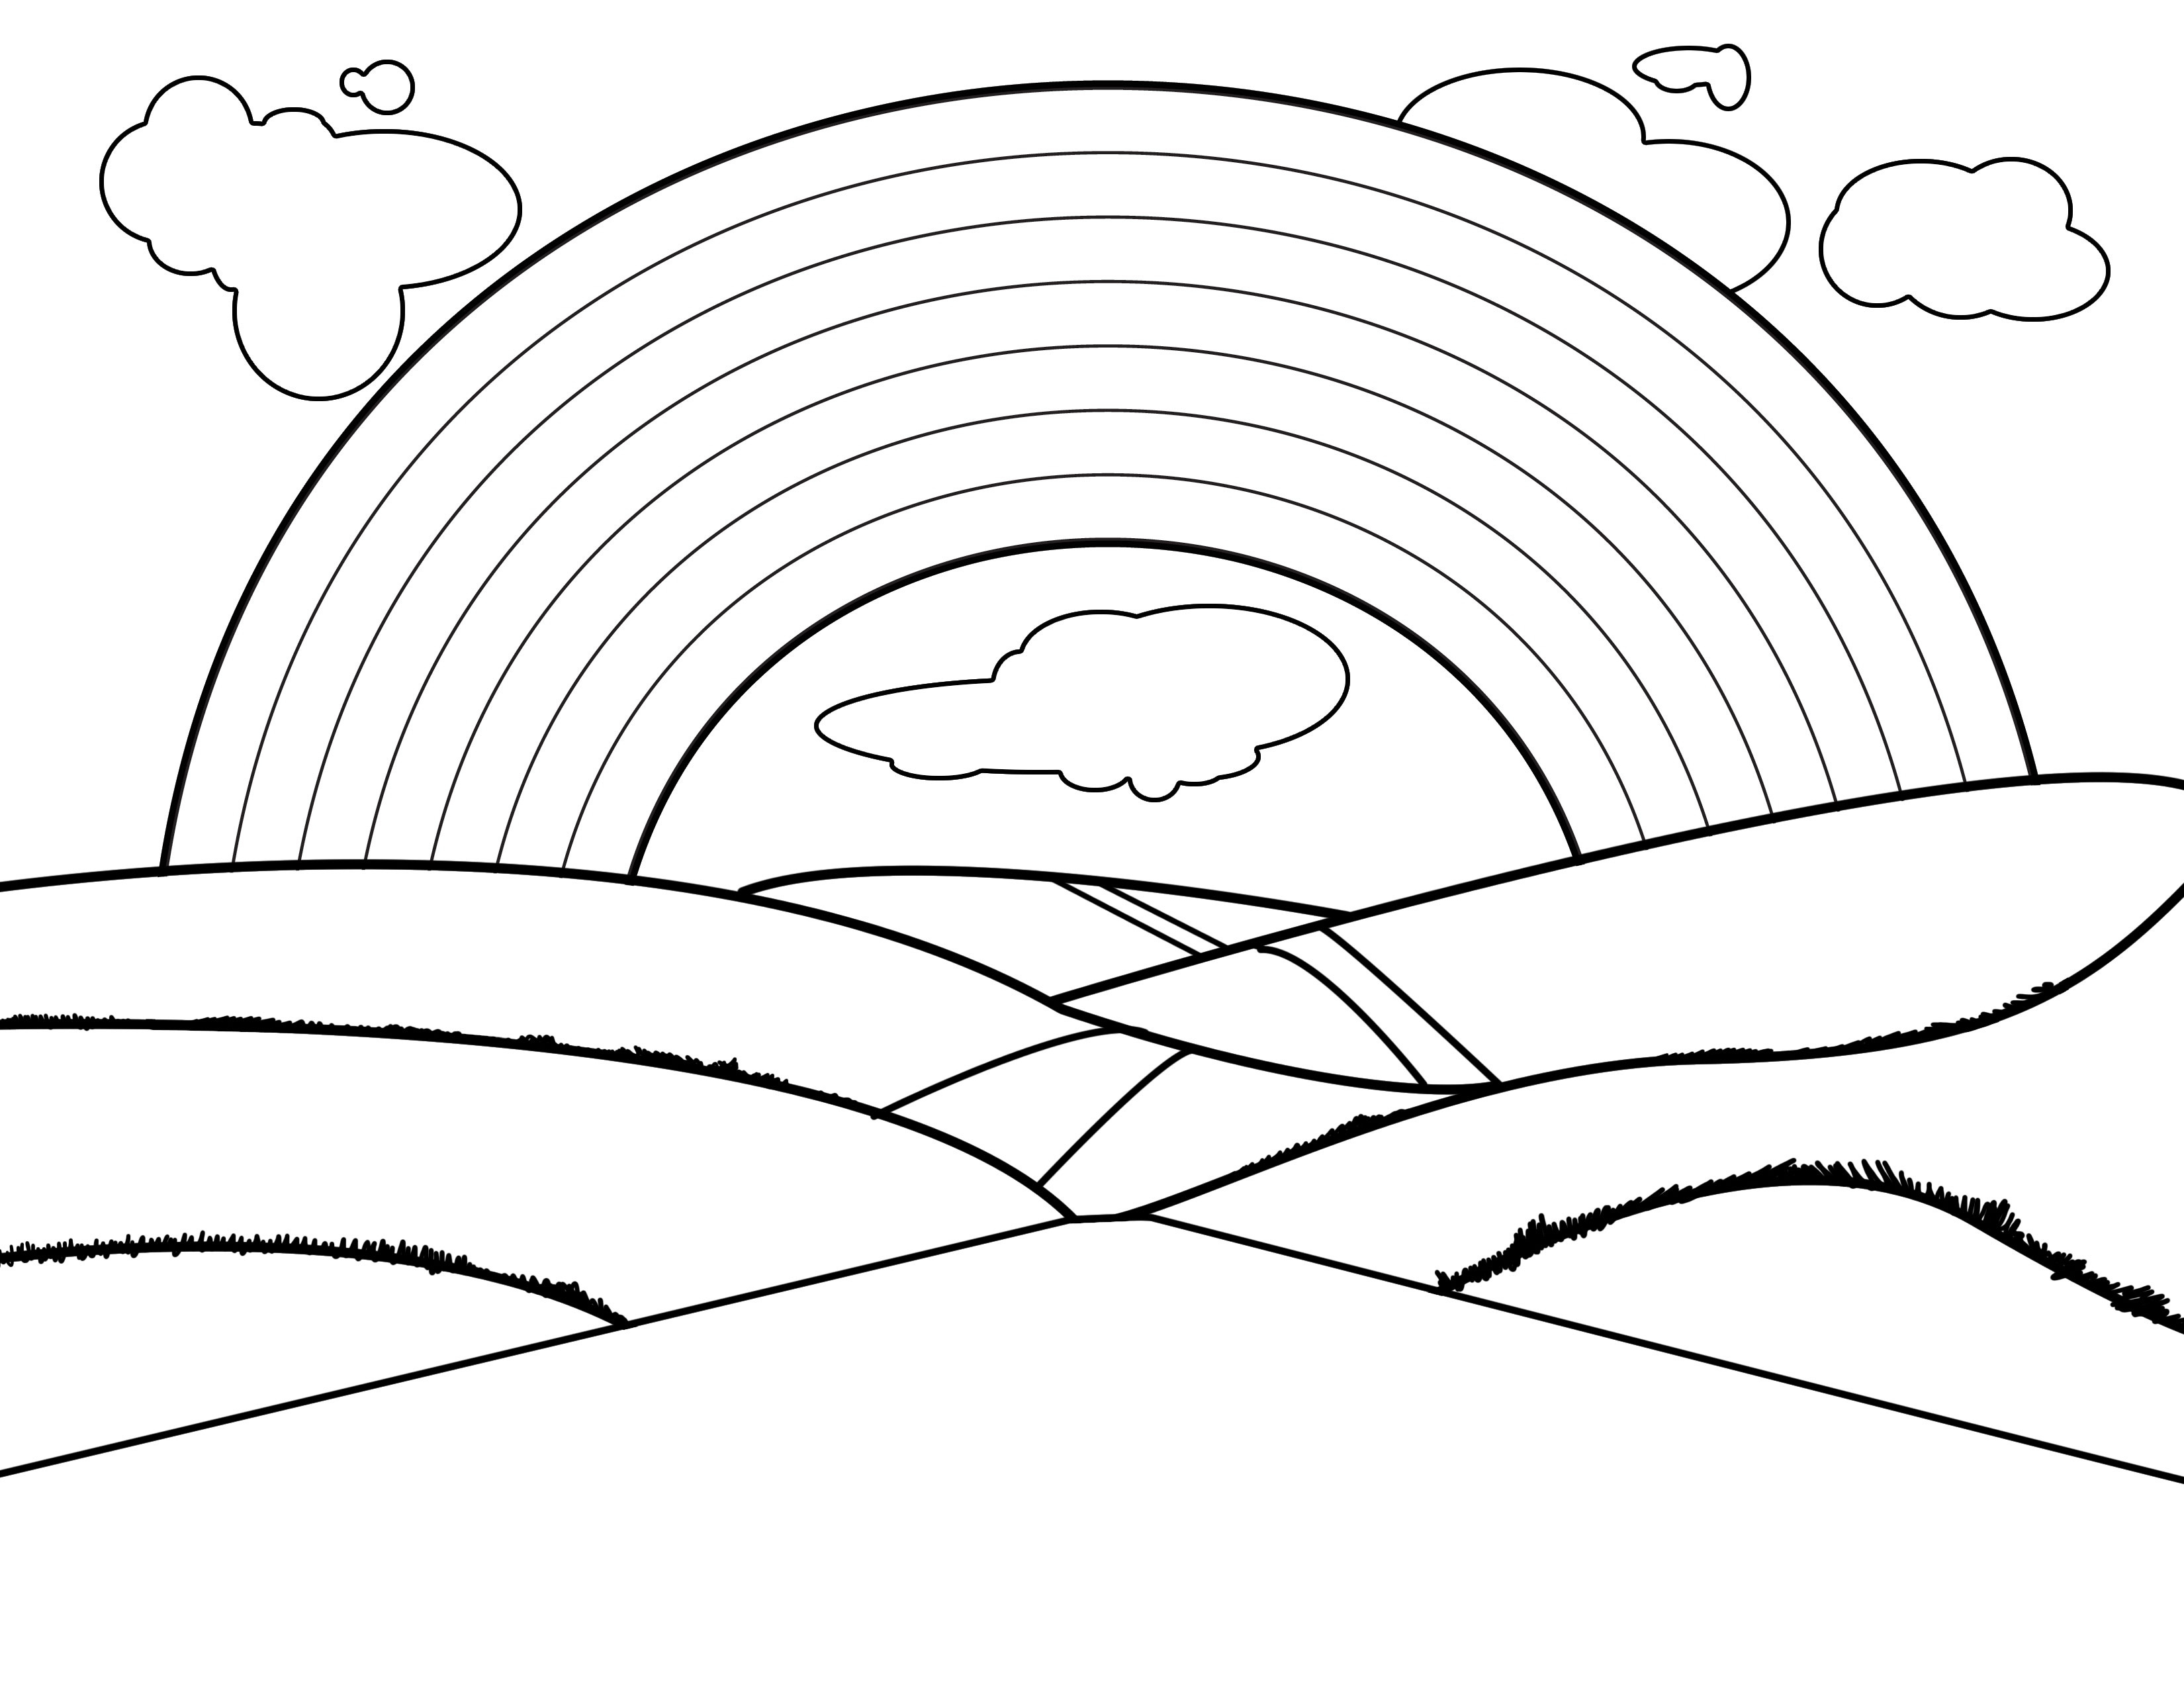 Coloring Pages For Kids To Print Out Free Printable Rainbow Coloring Pages For Kids